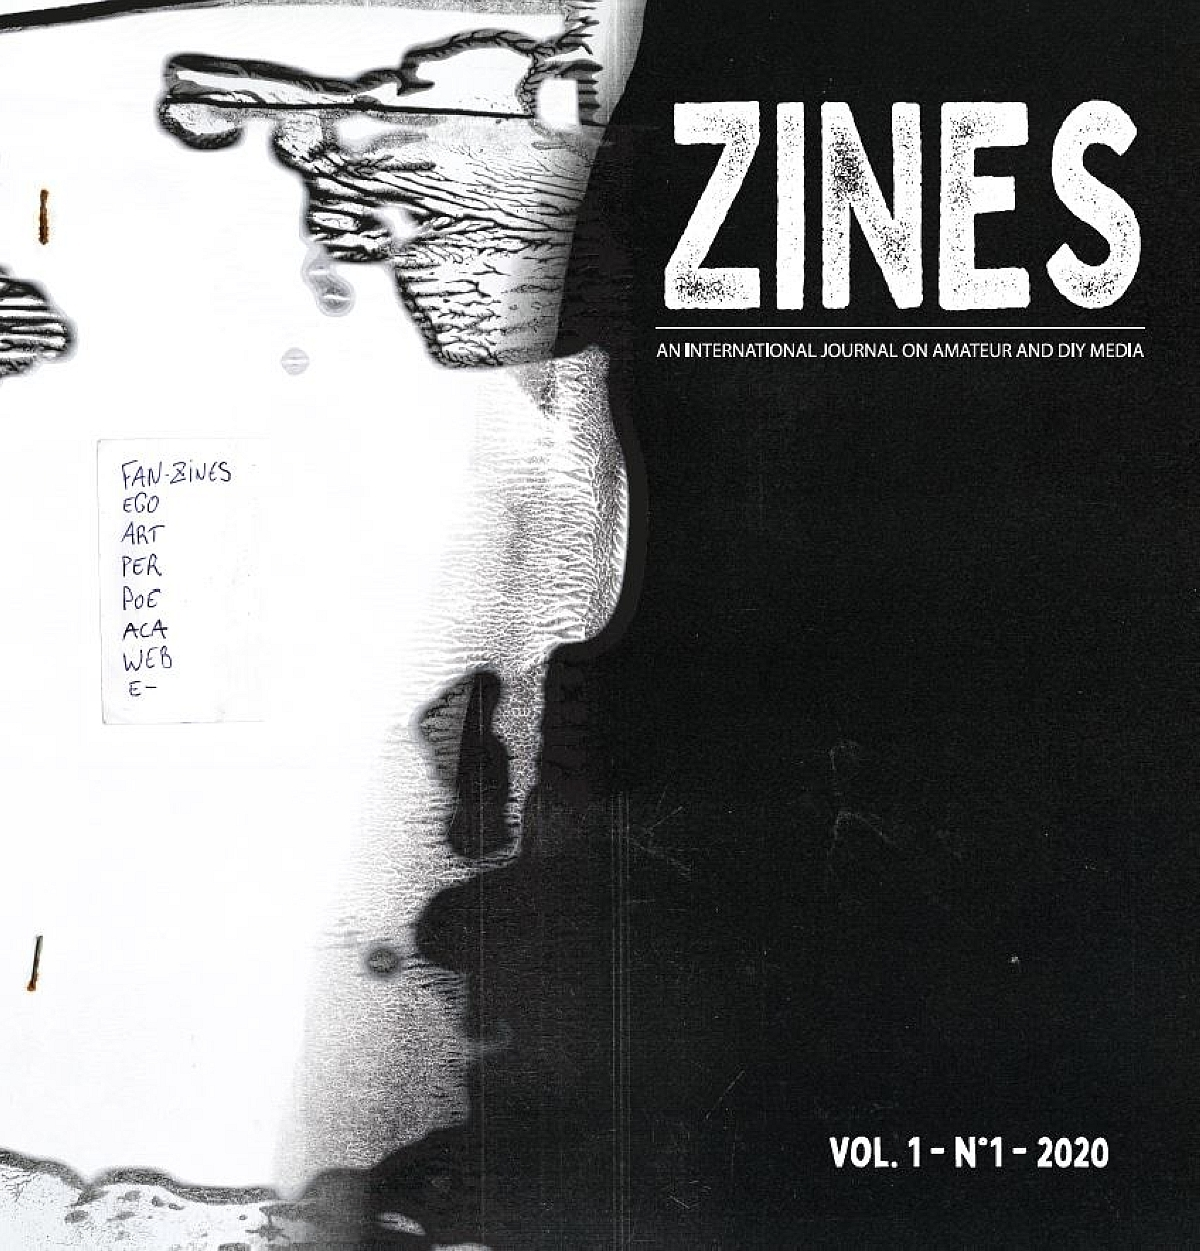 ZINES N  2020-1 - AN INTERNATIONAL JOURNAL ON AMATEUR AND DIY MEDIA